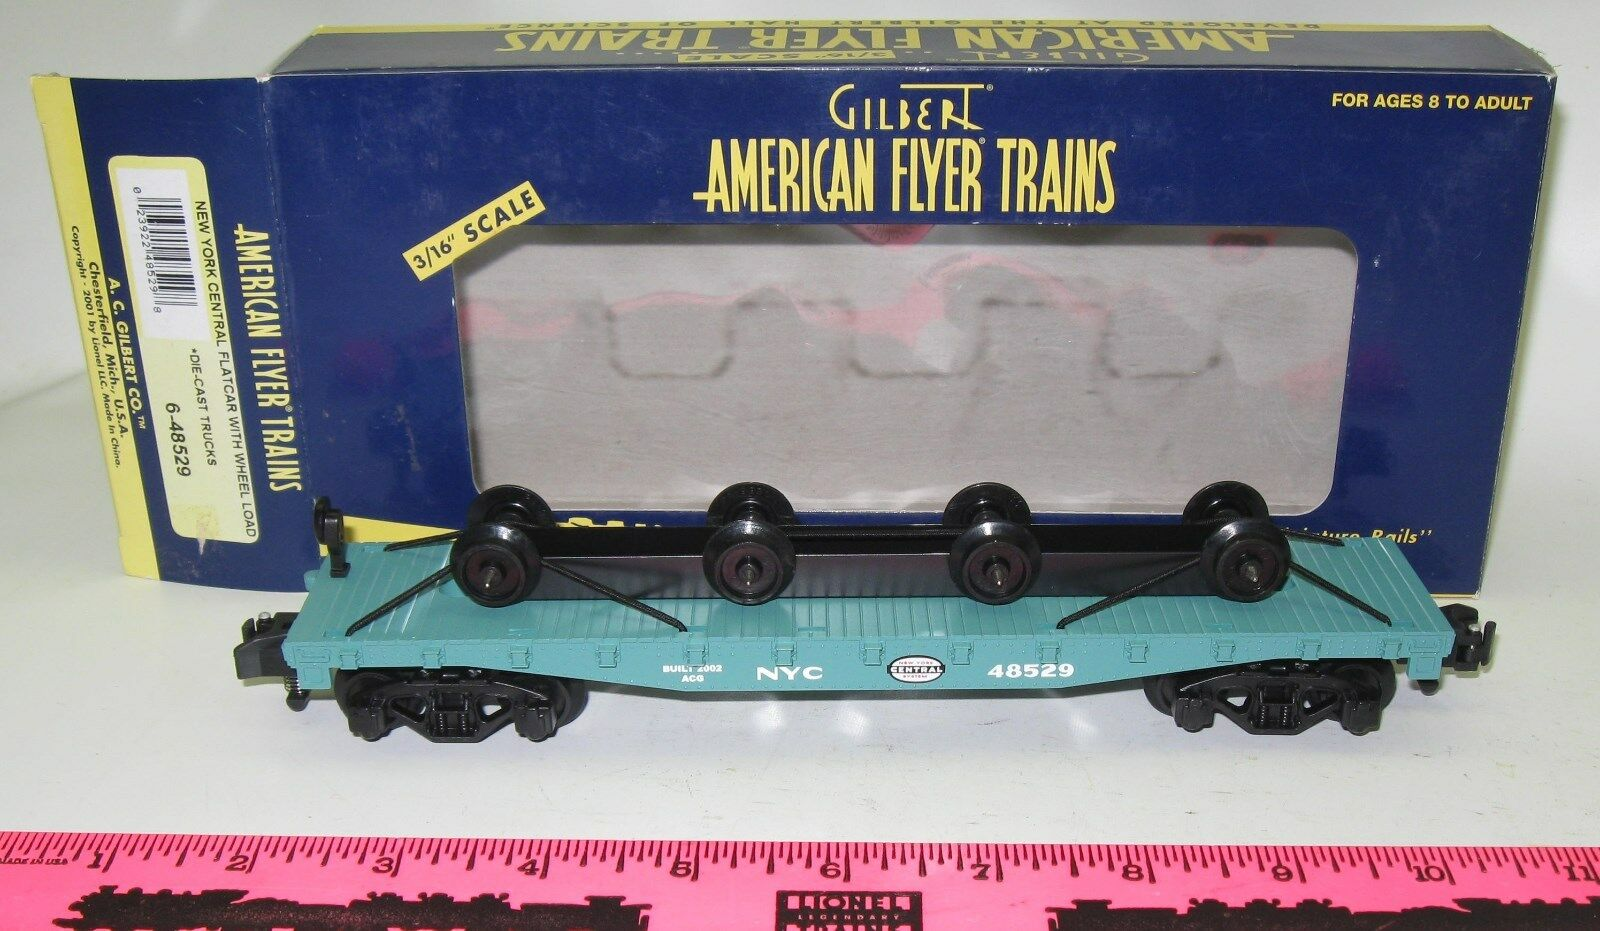 American Flyer New 6-48529 New York Central flatcar wit